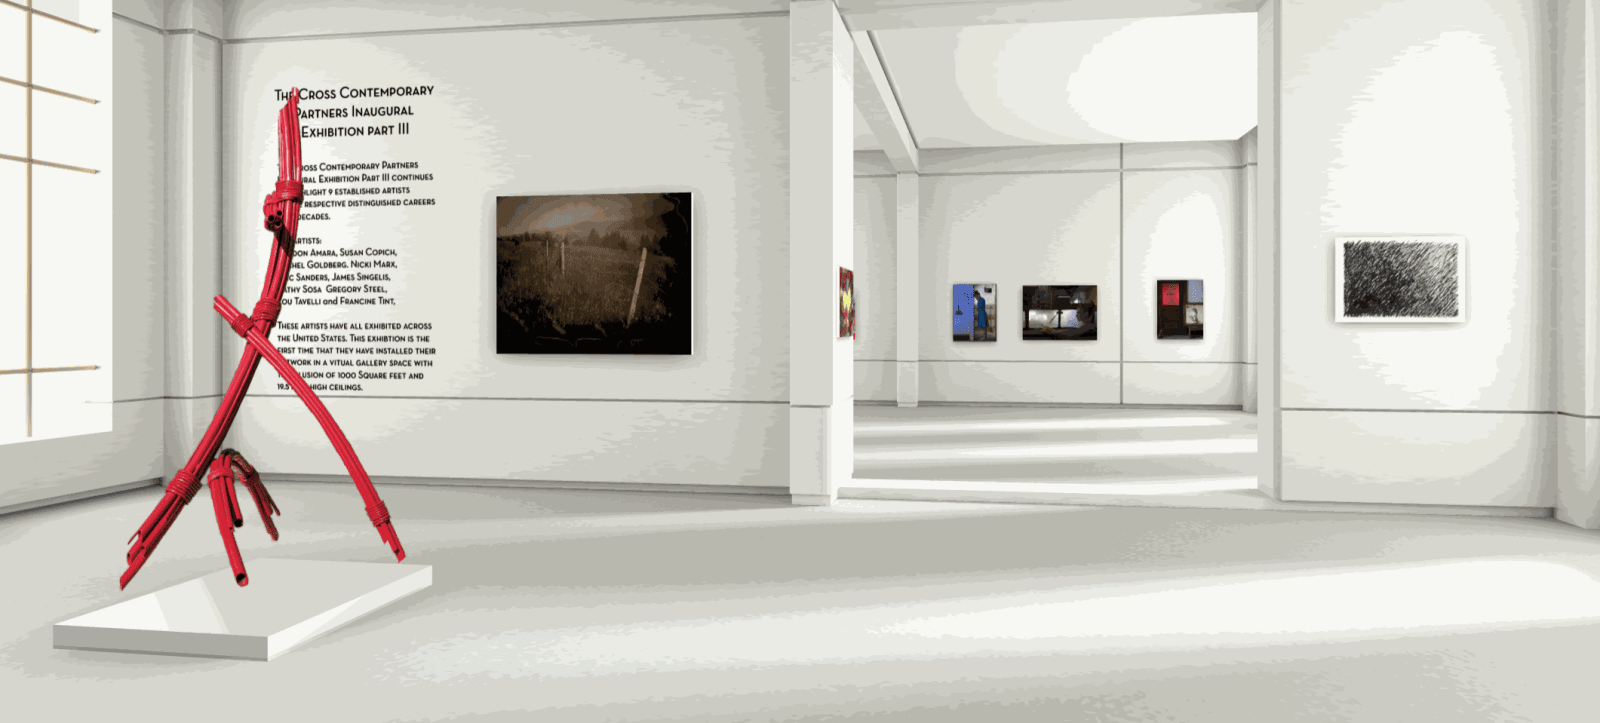 left to right: Gregory Steel, photographs by London Ameara, Susan Copich, monotype by Michel Goldberg